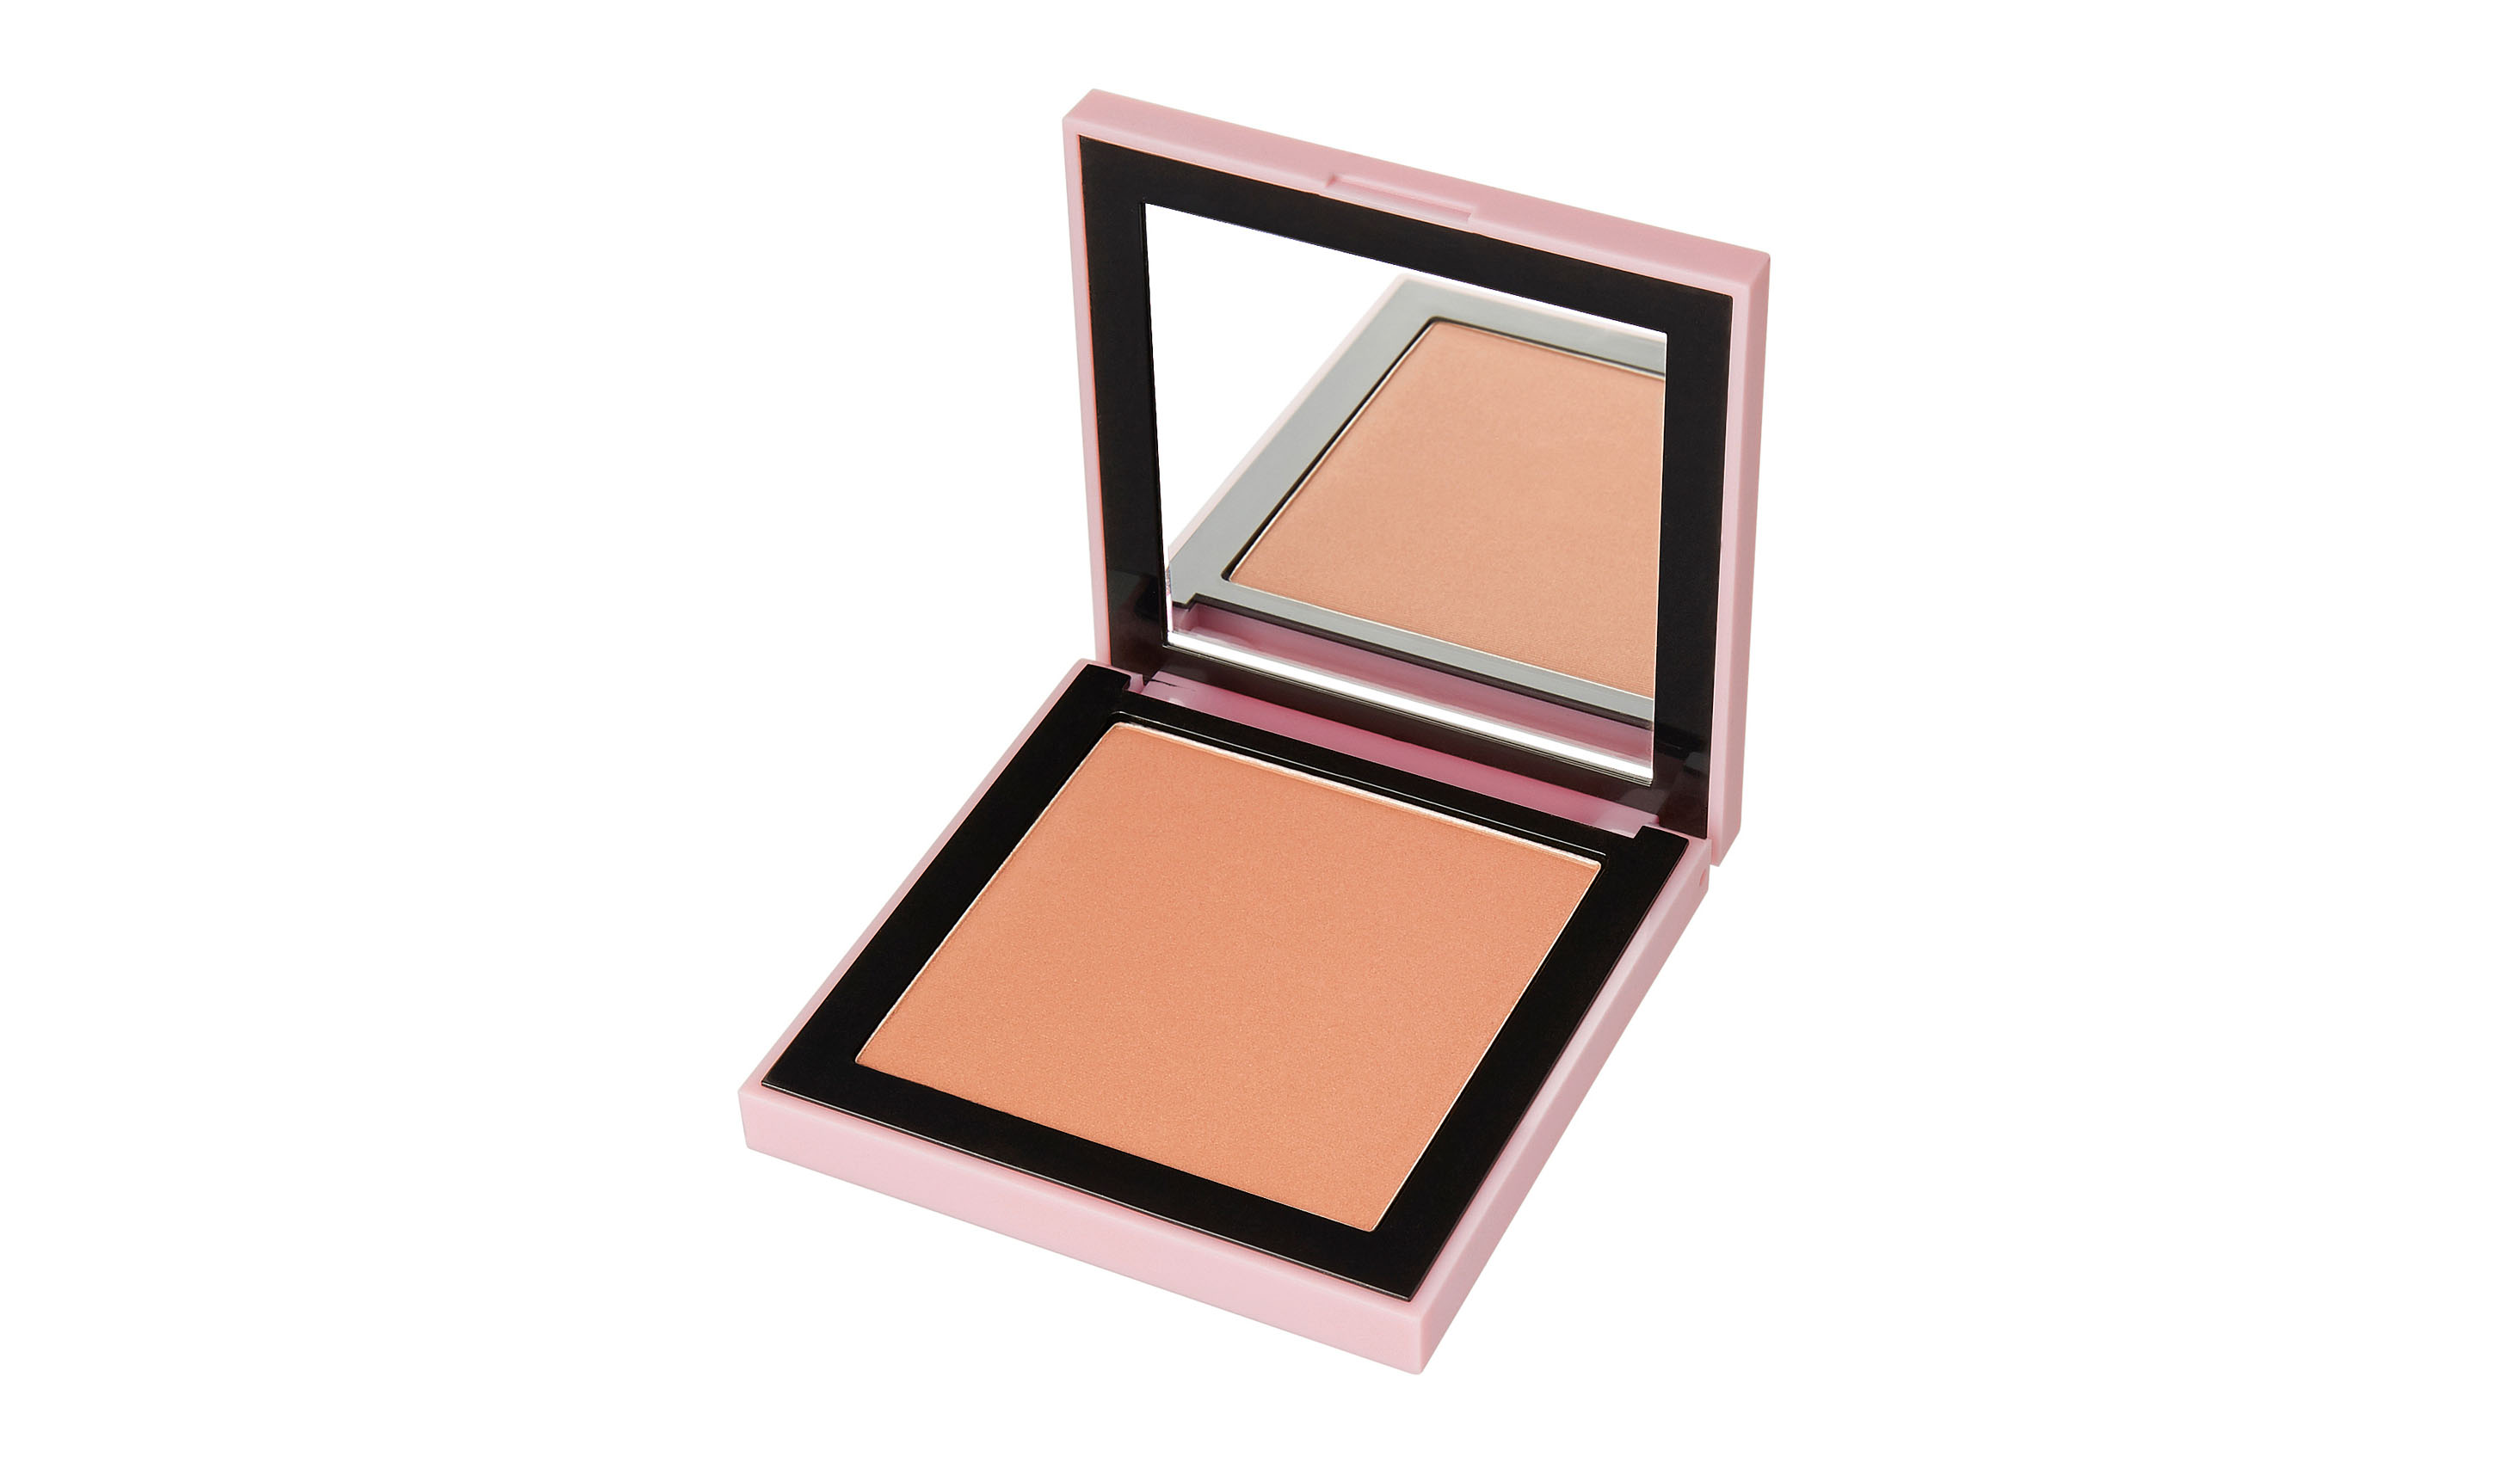 ASOS Blusher in Unbothered, £8